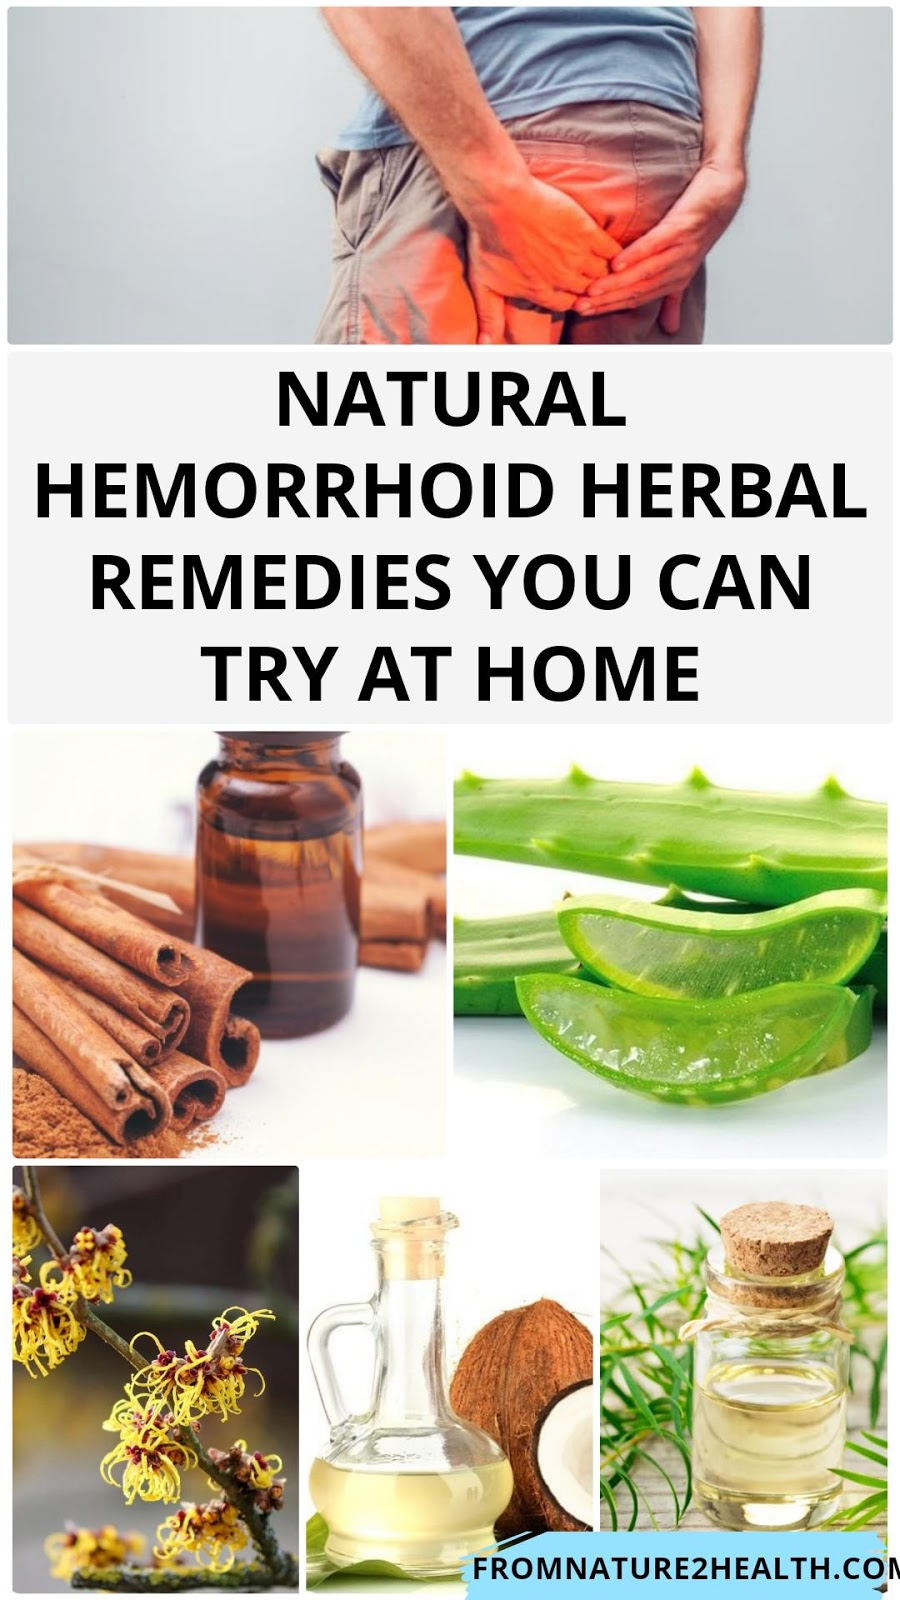 Natural Hemorrhoid Herbal Remedies You Can Try at HomeNatural Hemorrhoid Herbal Remedies You Can Try at Home